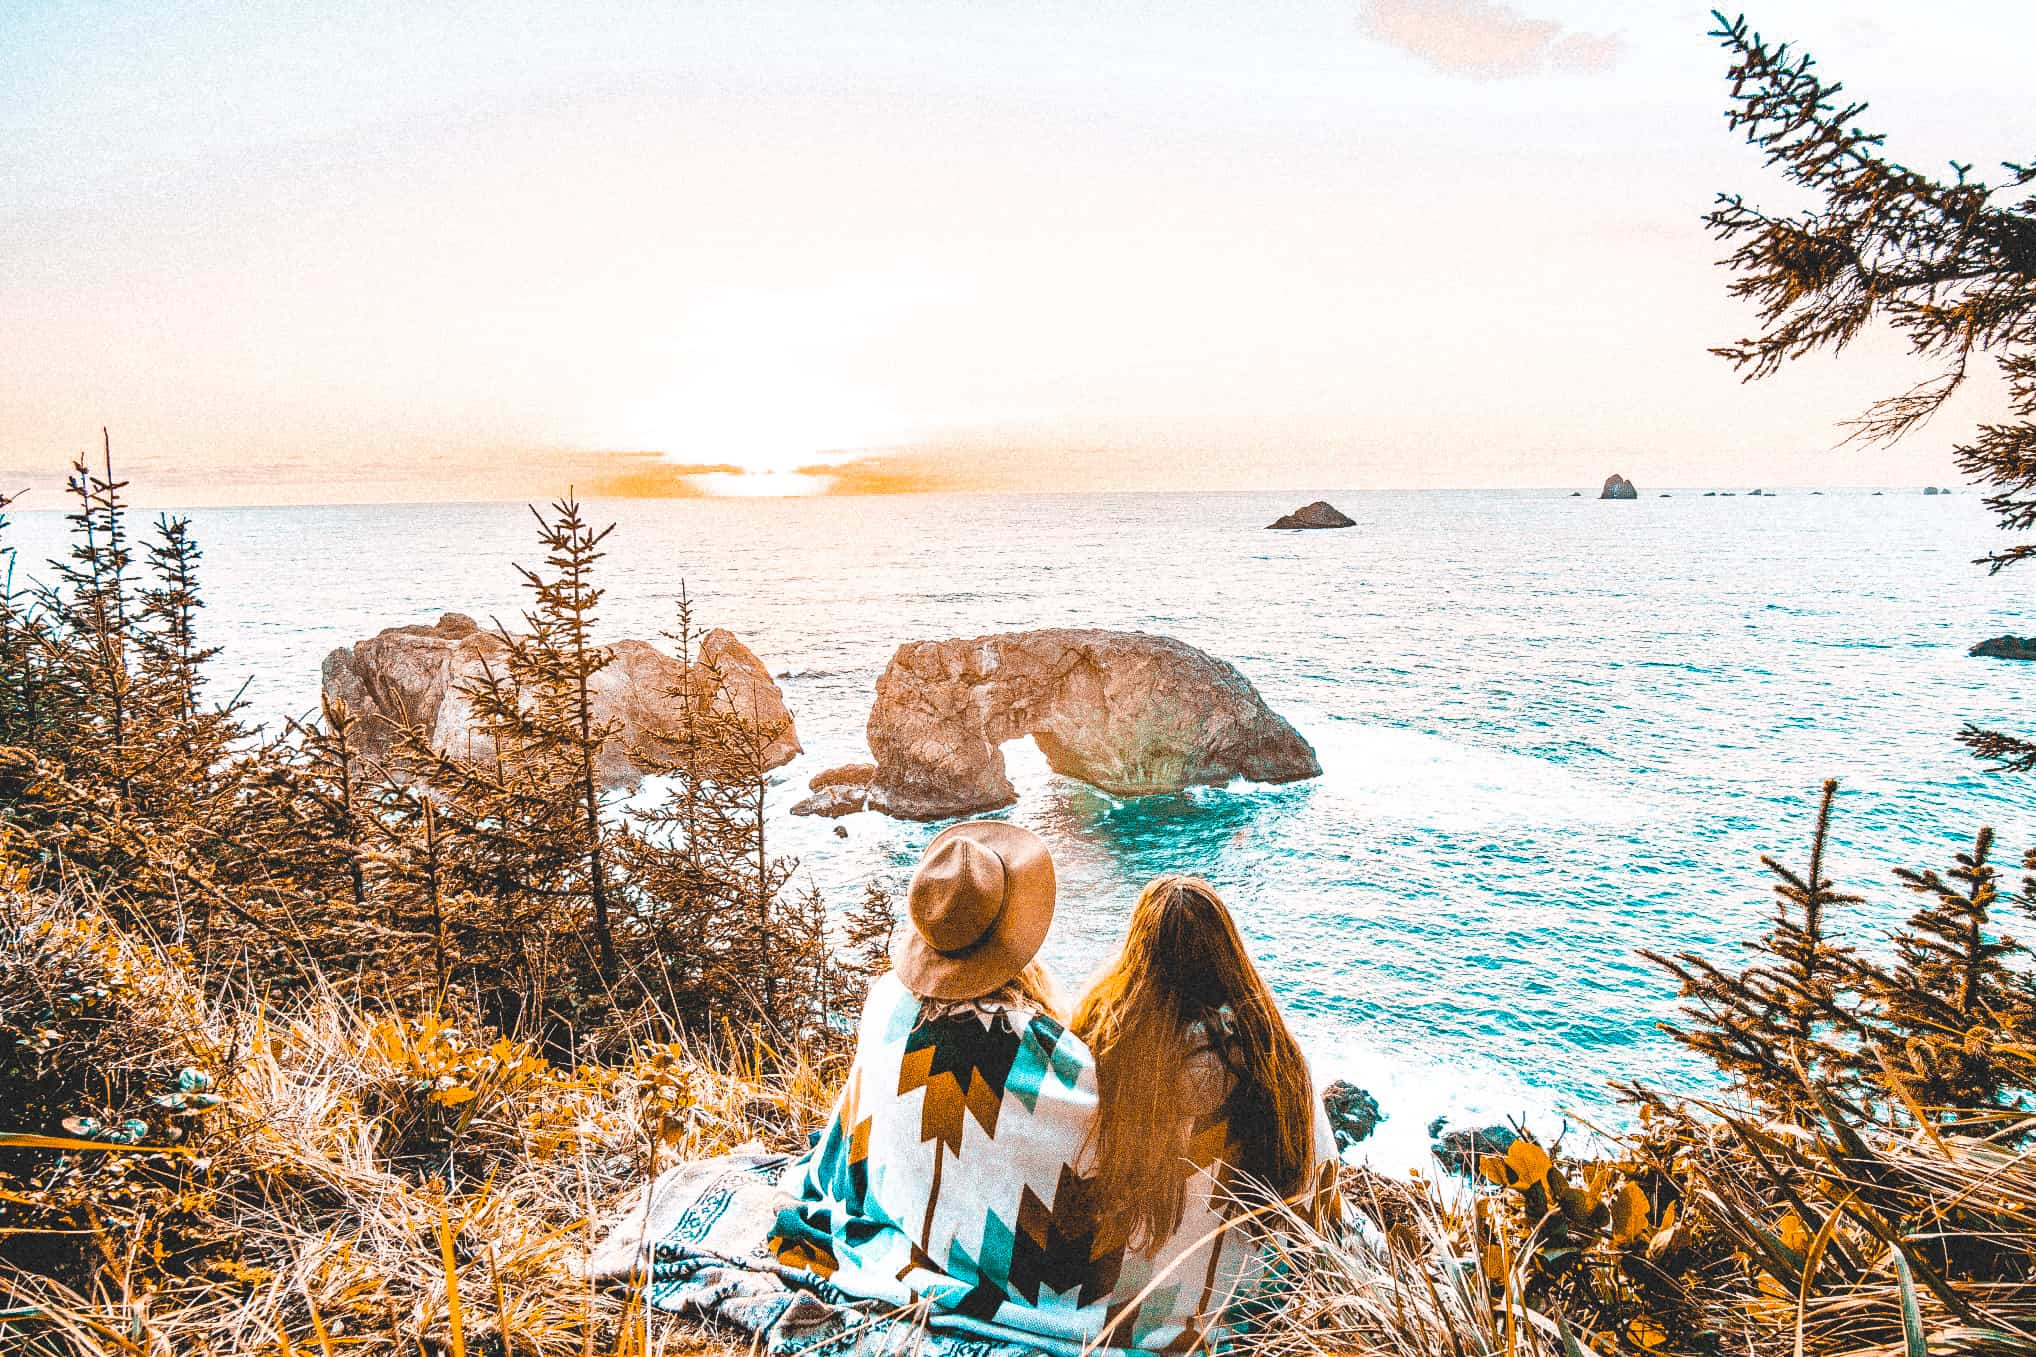 two-women-sitting-on-a-cliff-overlooking-the-ocean-watching-the-sunset_t20_WxxNW4 2